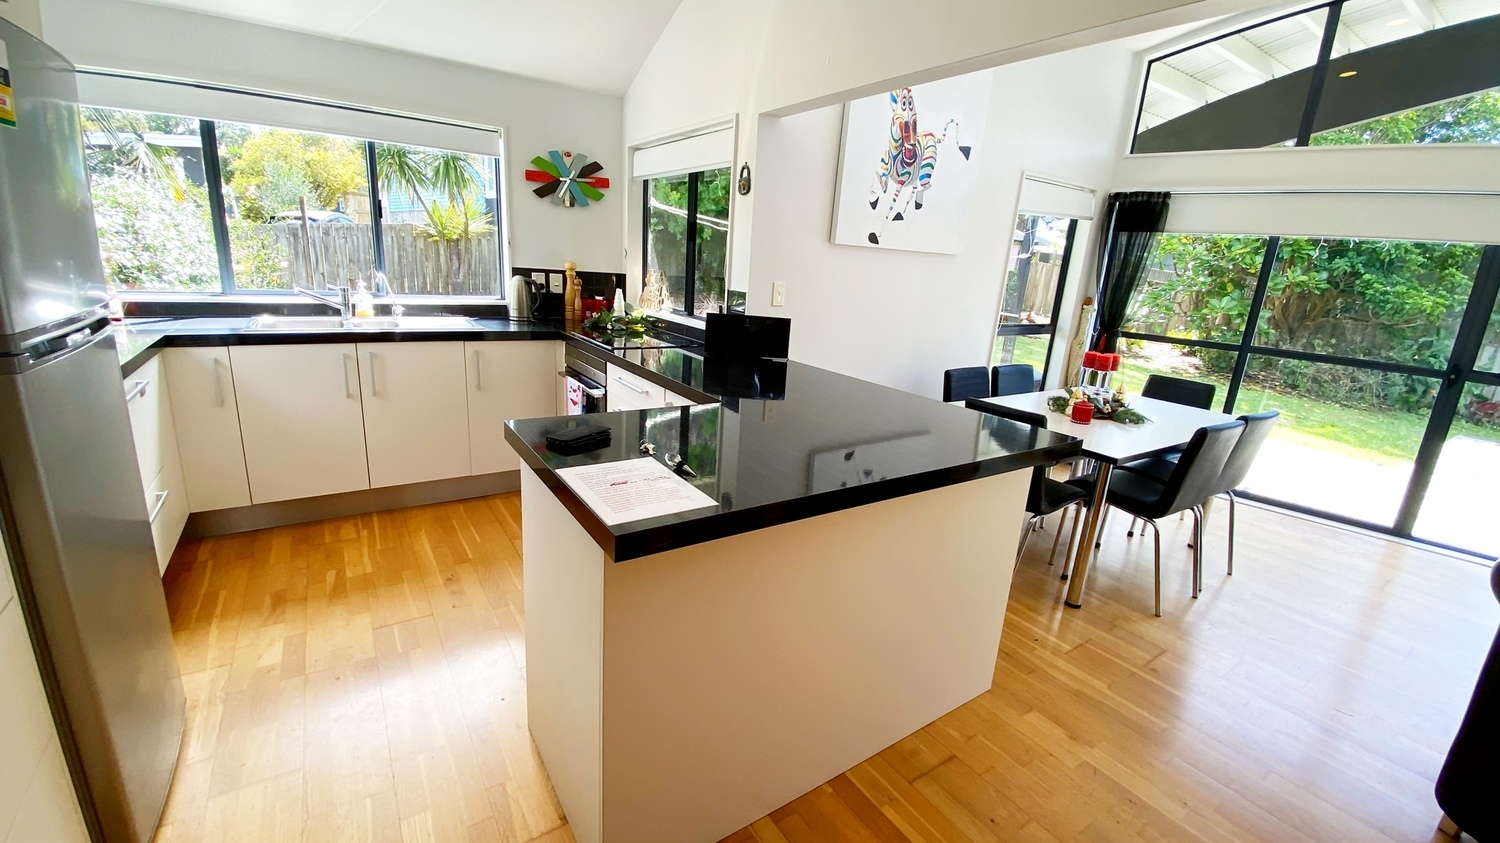 3._Woodlands_kitchen_through_to_dining_and_exterior.msg_1_1500x843.jpg